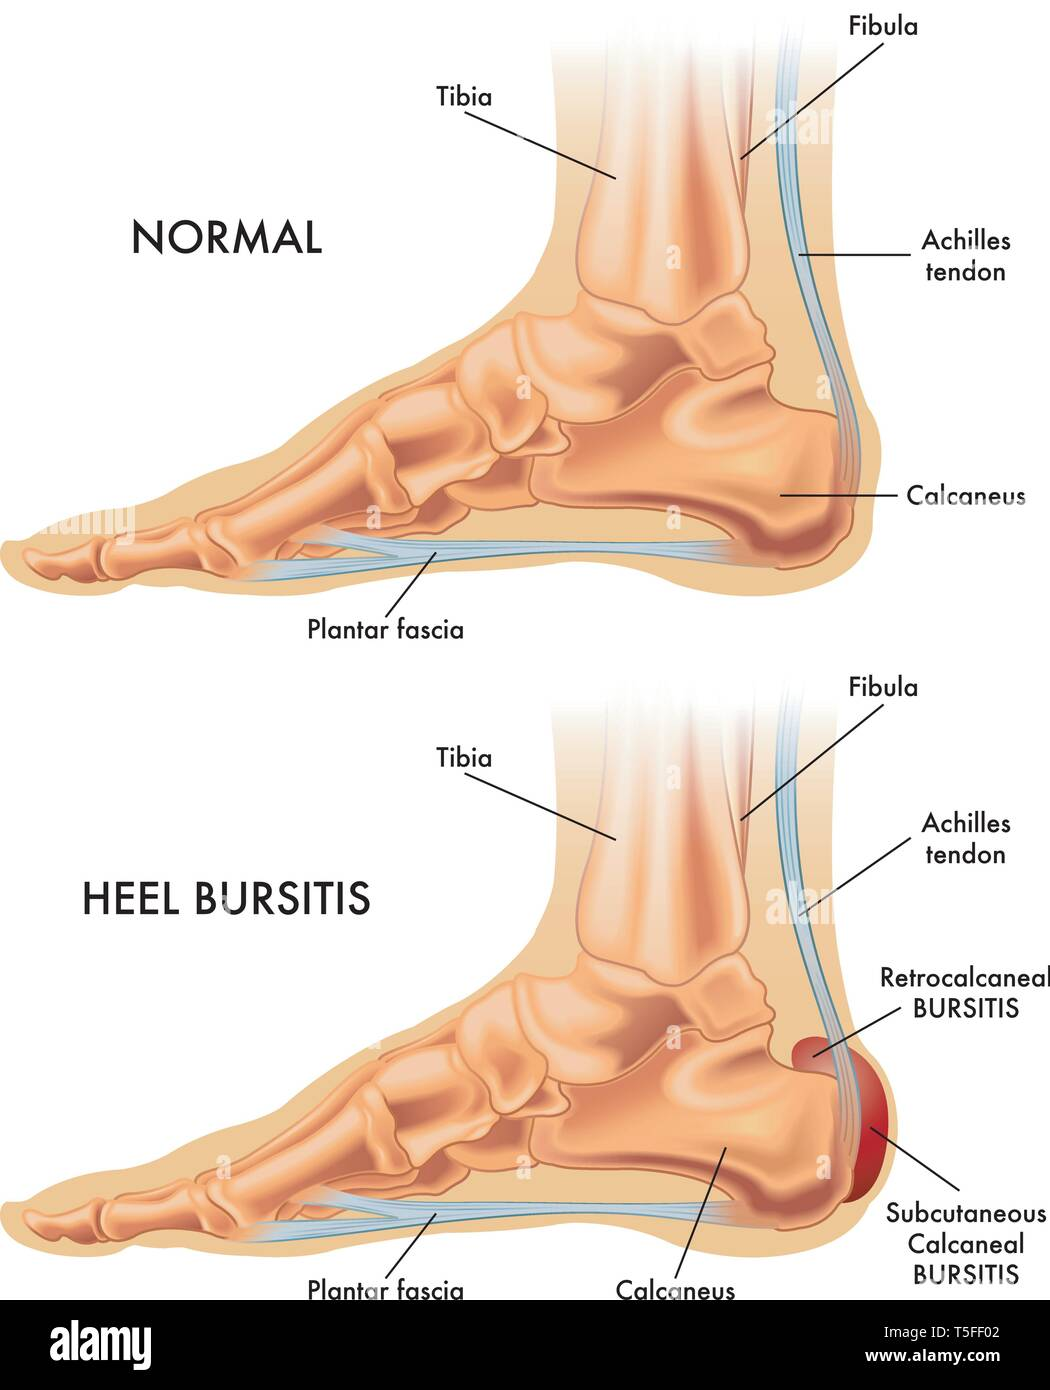 hight resolution of a medical illustration of a healthy foot and a foot affected by heel bursitis